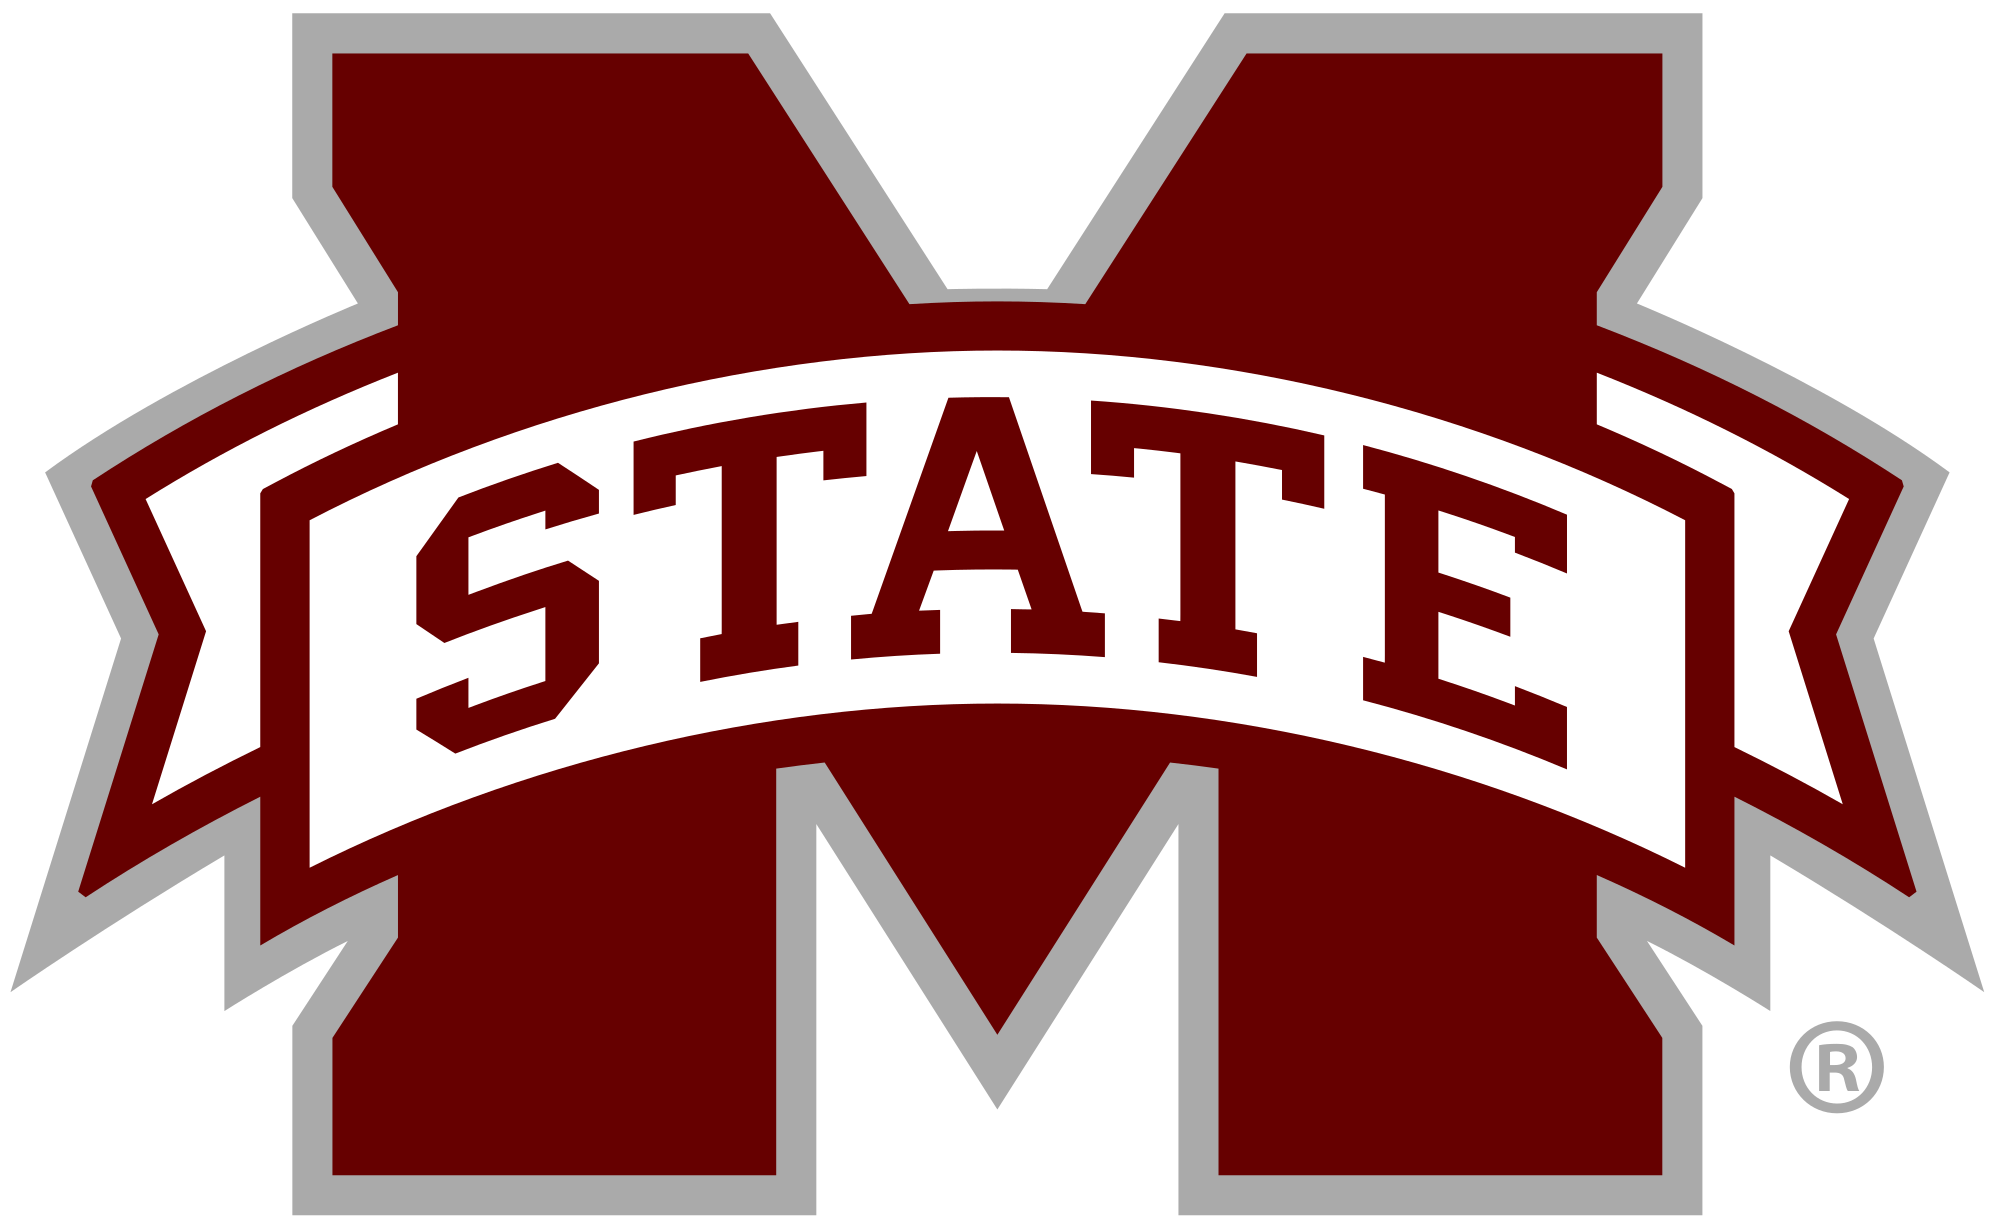 File:MississippiStateBulldogs.png